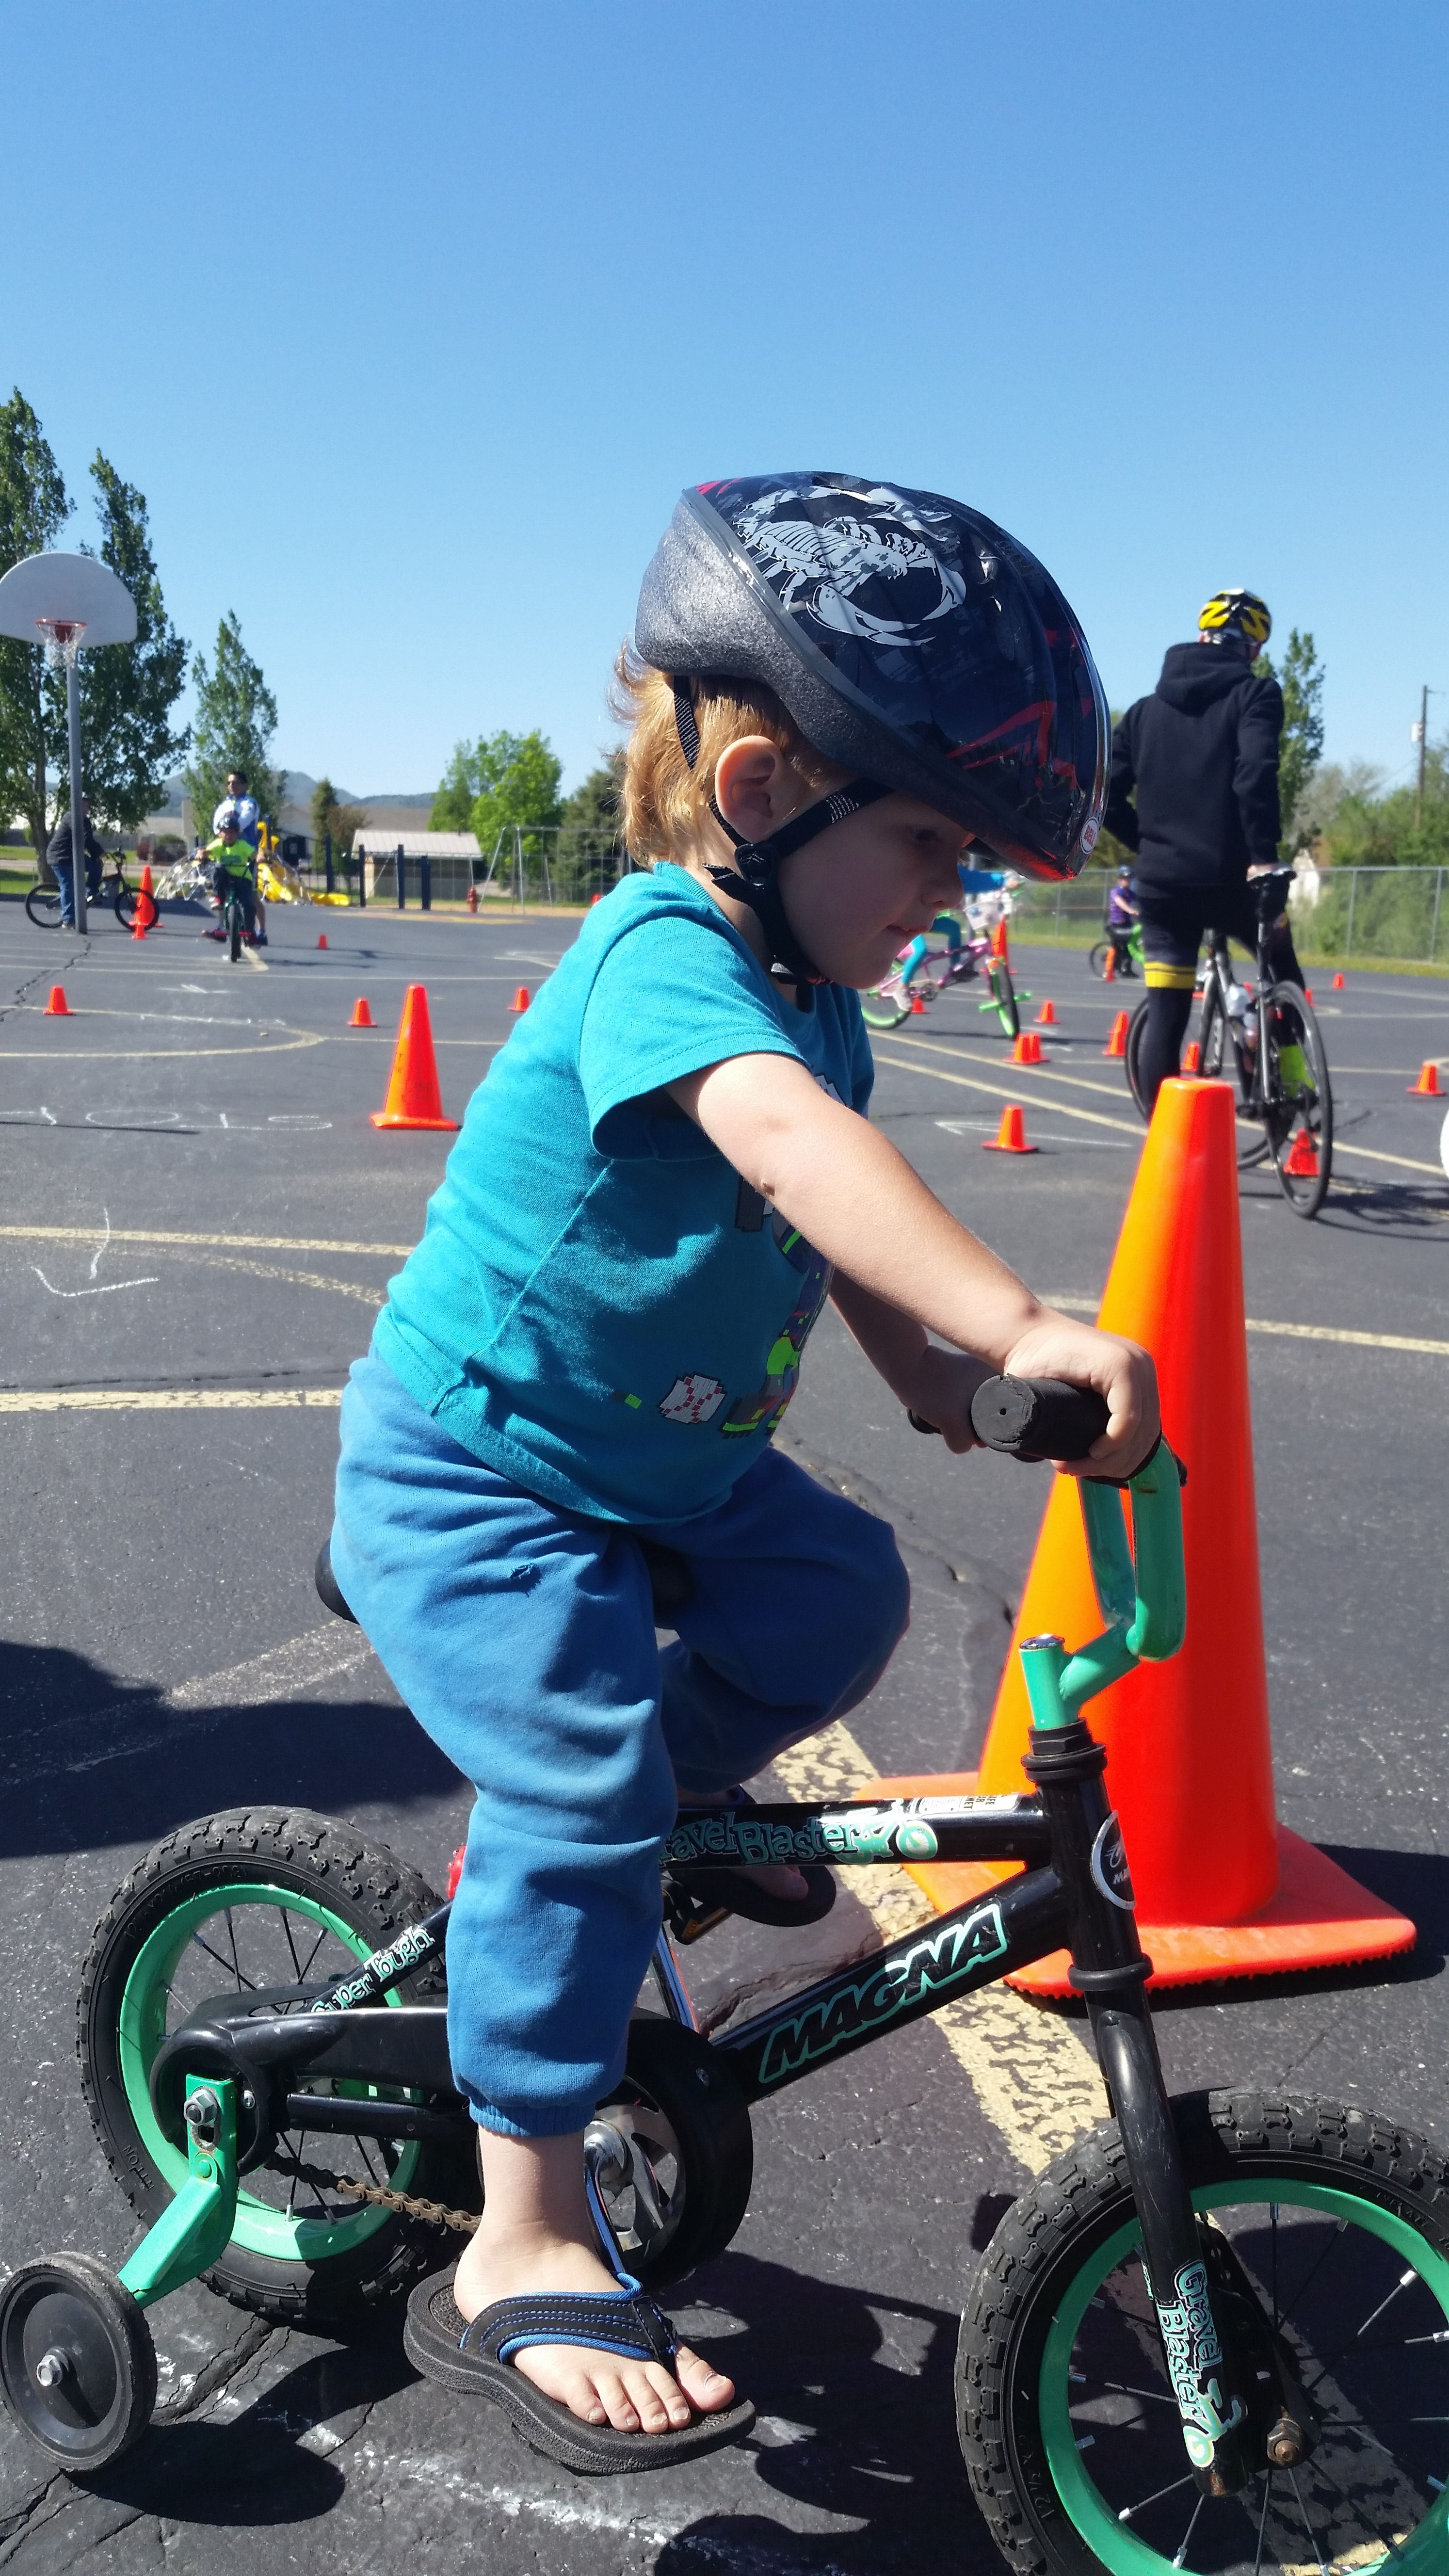 A young rider enjoys the activities at the Washington County Road Respect event in Enterprise, May 21, 2016 | Photo courtesy of Kai Reed, St. George News